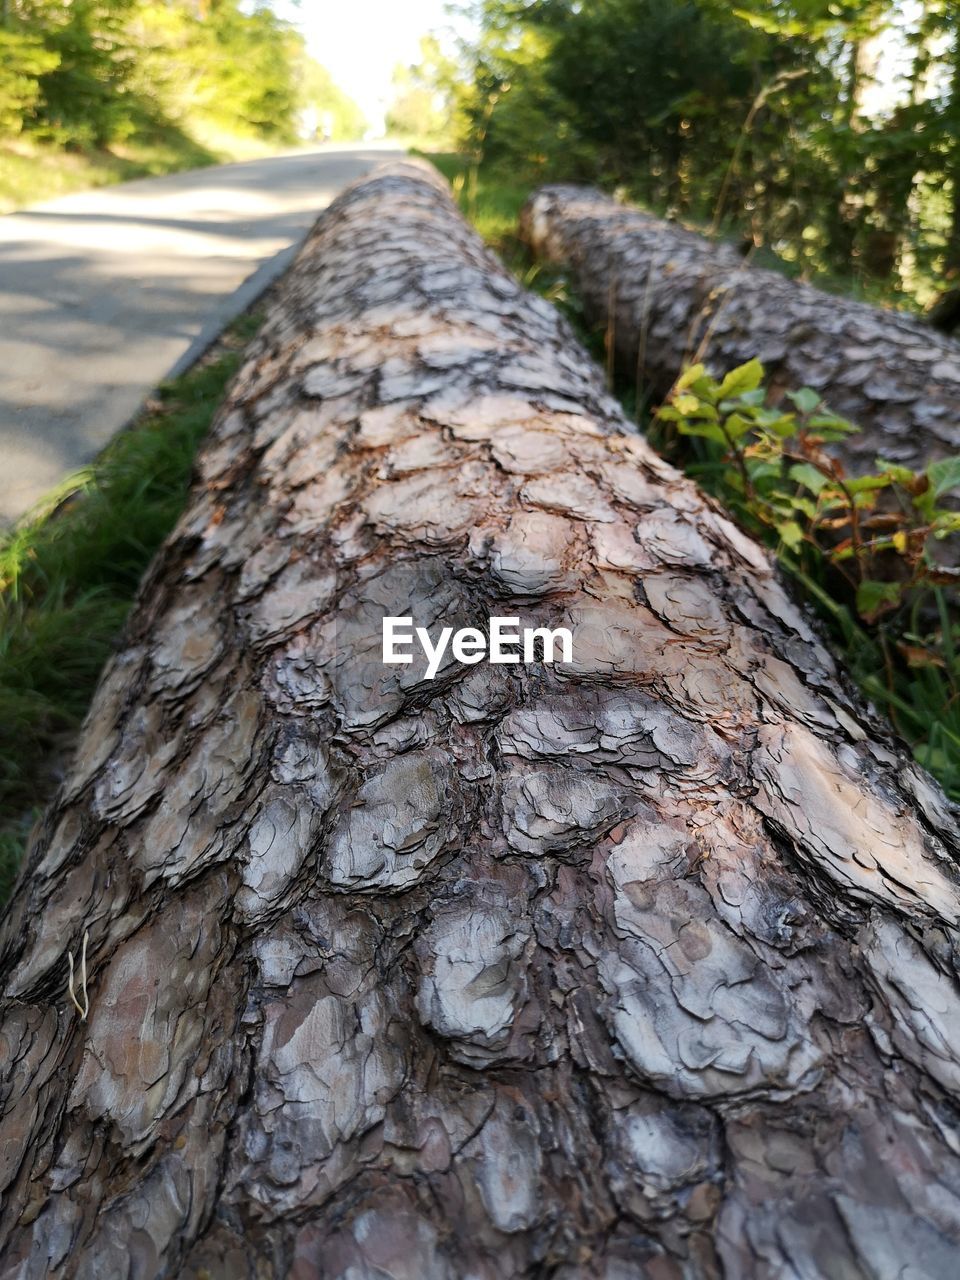 tree, trunk, tree trunk, textured, focus on foreground, plant, close-up, rough, day, no people, wood - material, bark, nature, growth, pattern, natural pattern, selective focus, outdoors, plant bark, forest